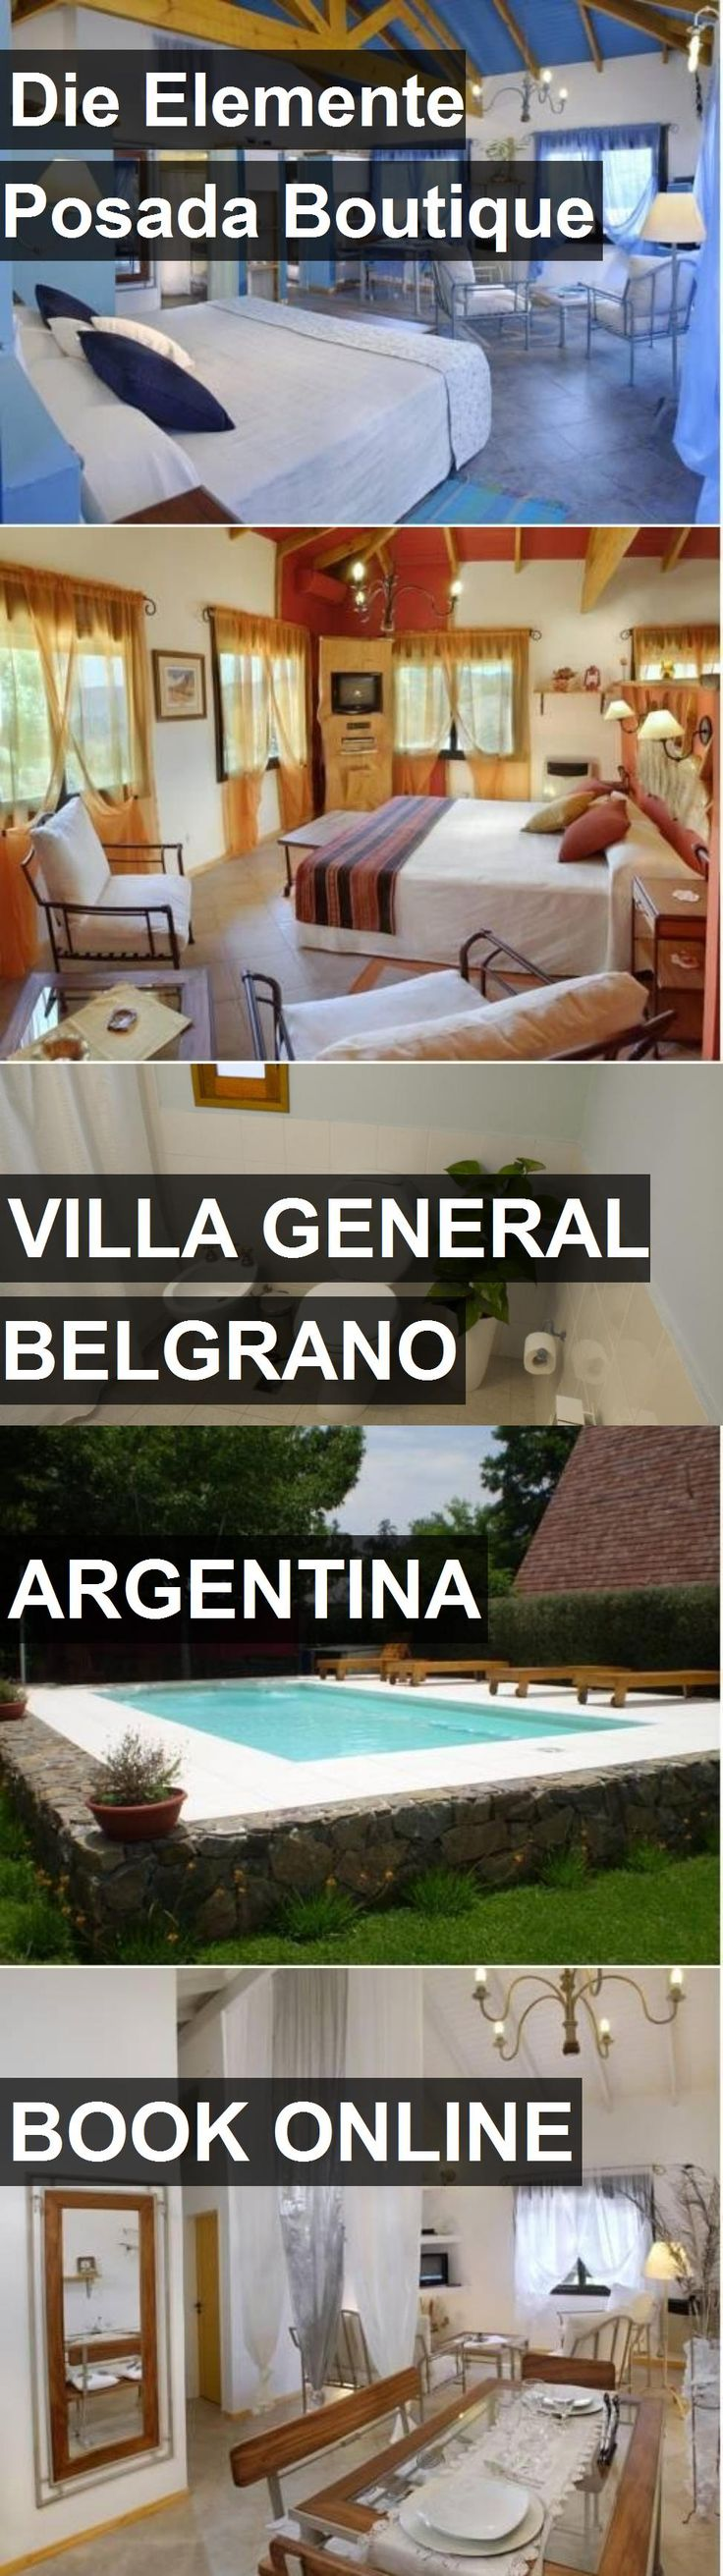 Hotel Die Elemente Posada Boutique in Villa General Belgrano, Argentina. For more information, photos, reviews and best prices please follow the link. #Argentina #VillaGeneralBelgrano #travel #vacation #hotel